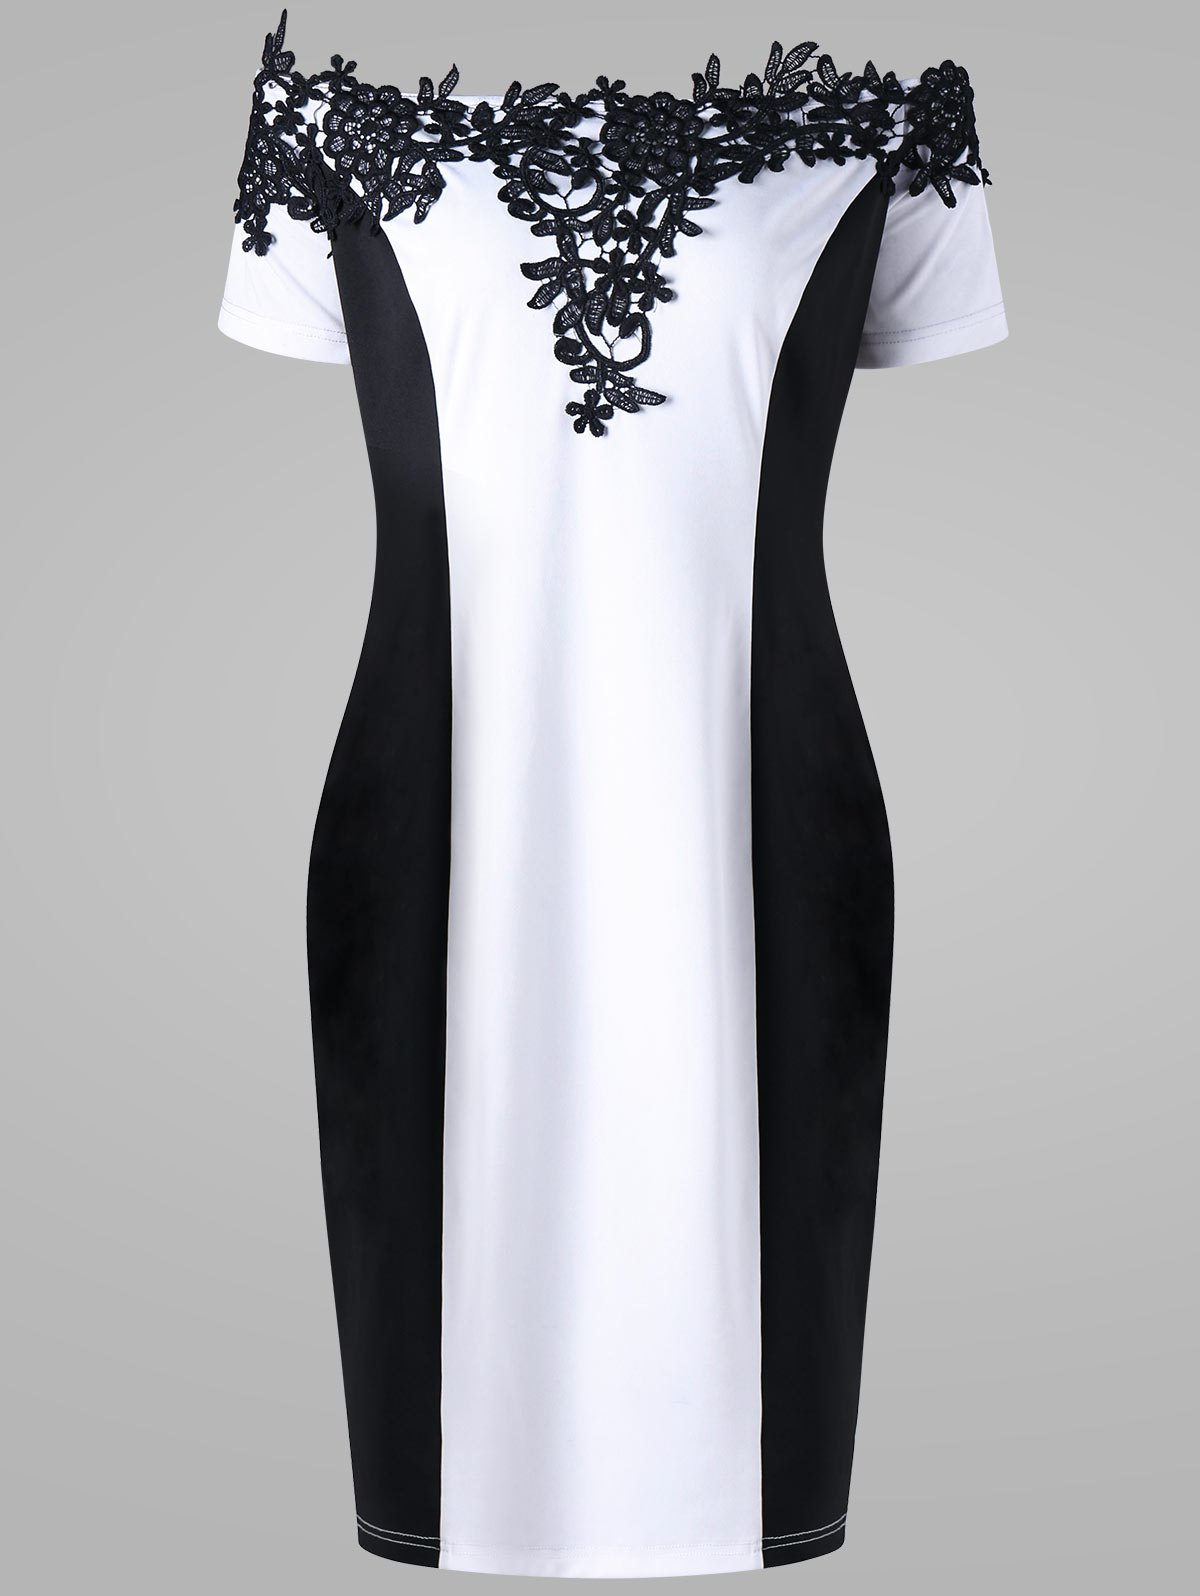 Appliqued Off The Shoulder Plus Size Pencil DressWOMEN<br><br>Size: 4XL; Color: WHITE AND BLACK; Style: Brief; Material: Polyester,Spandex; Silhouette: Sheath; Dresses Length: Mini; Neckline: Off The Shoulder; Sleeve Length: Short Sleeves; Embellishment: Appliques; Pattern Type: Floral; With Belt: No; Season: Summer; Weight: 0.3200kg; Package Contents: 1 x Dress;